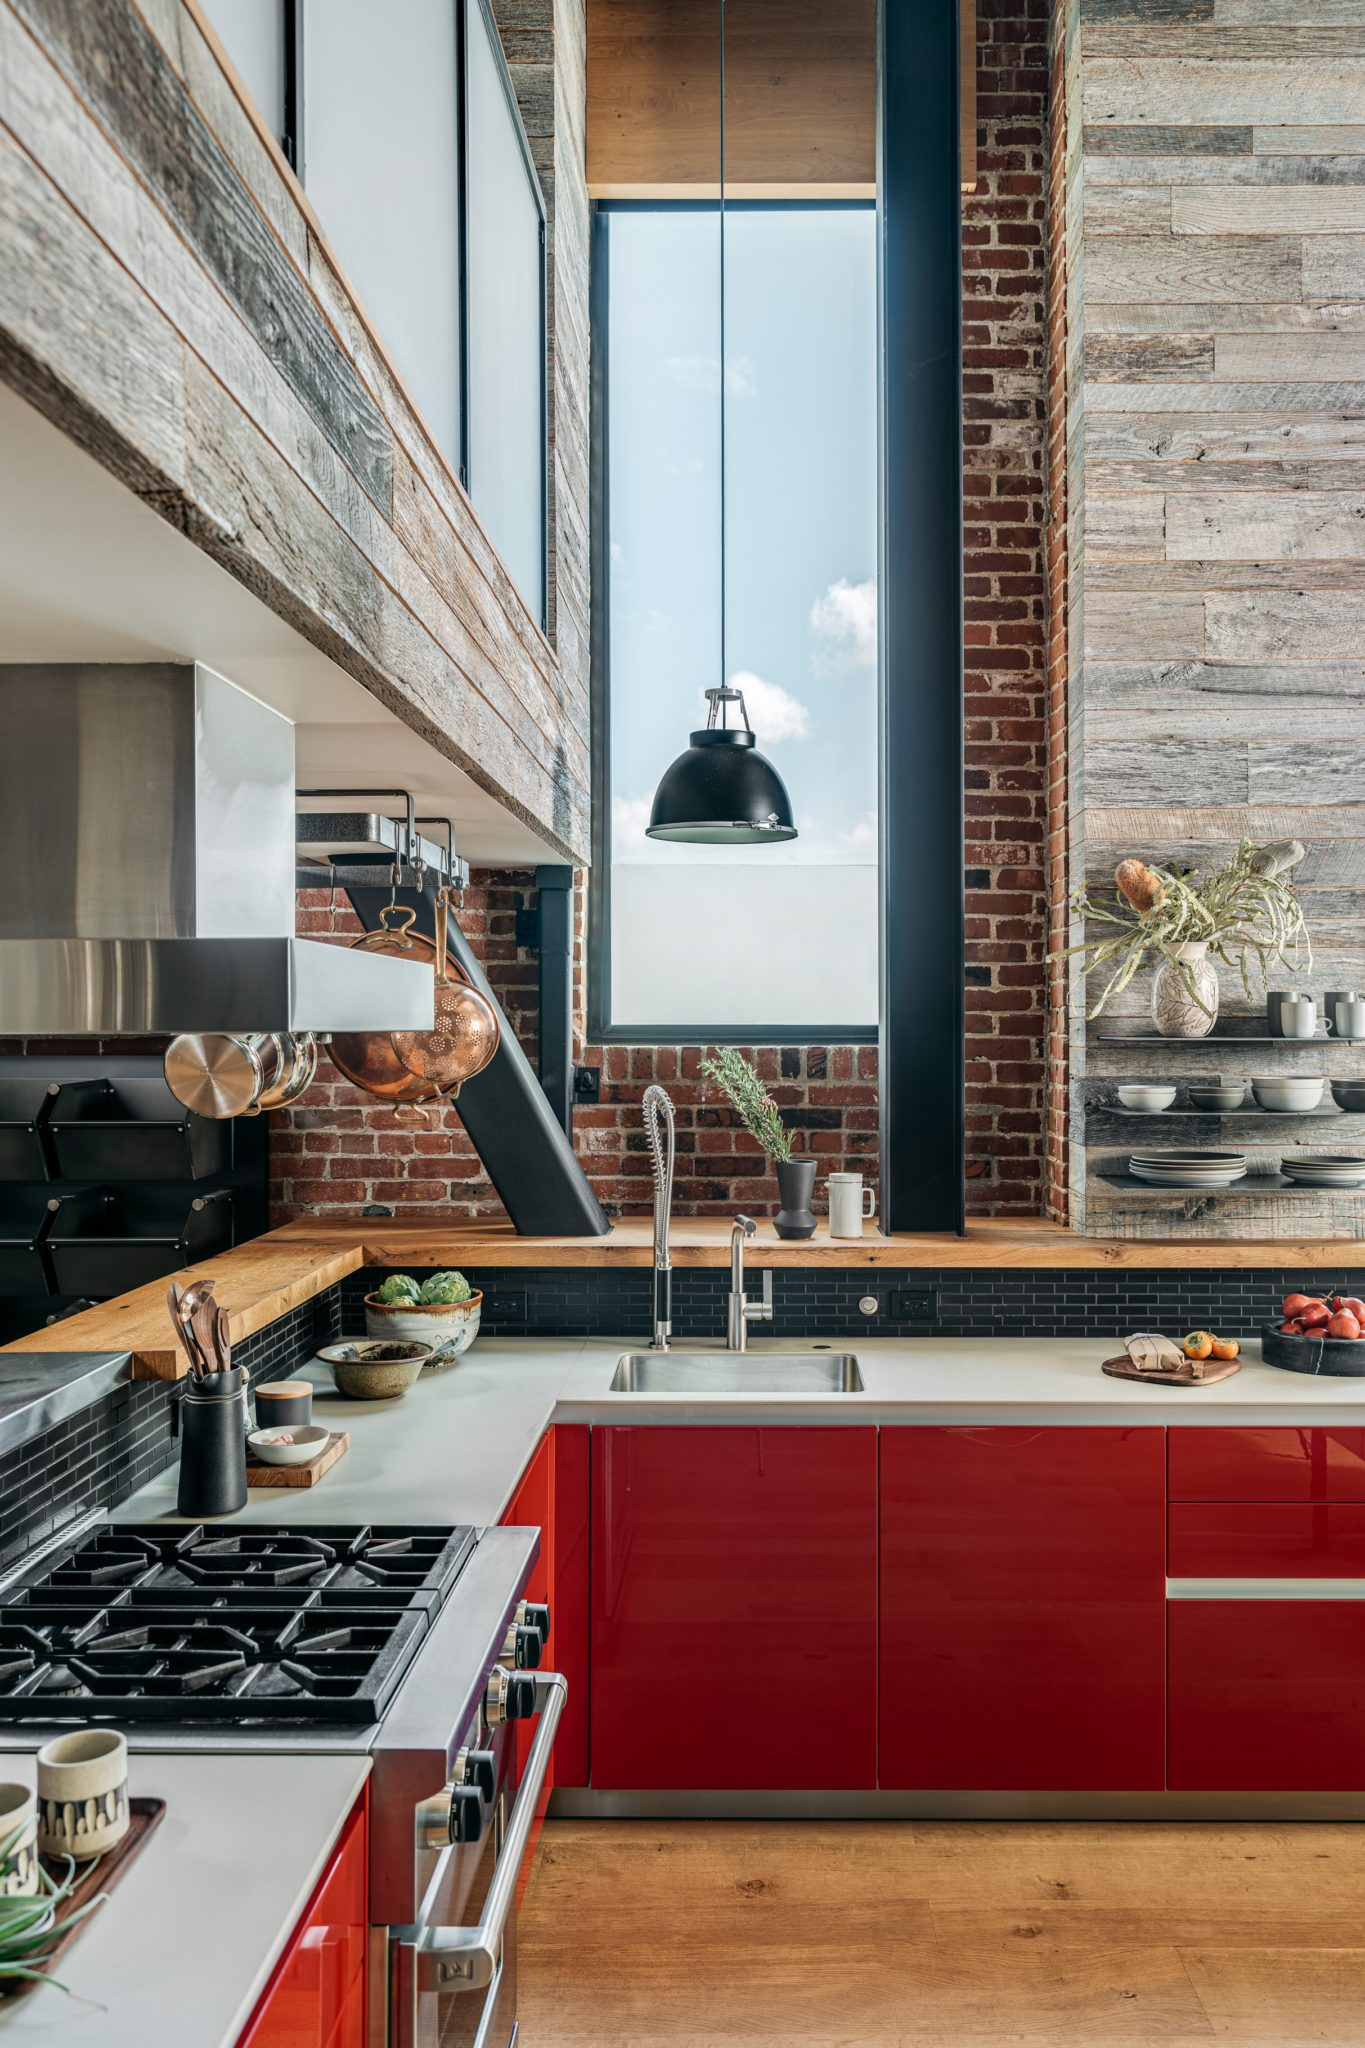 The red lacquered kitchen cabinetry from Bulthaup makes a statement; the countertops are also from Bulthaup. Reclaimed barn siding wraps around the kitchen area, and white oak fascias subtly conceal the window shades.